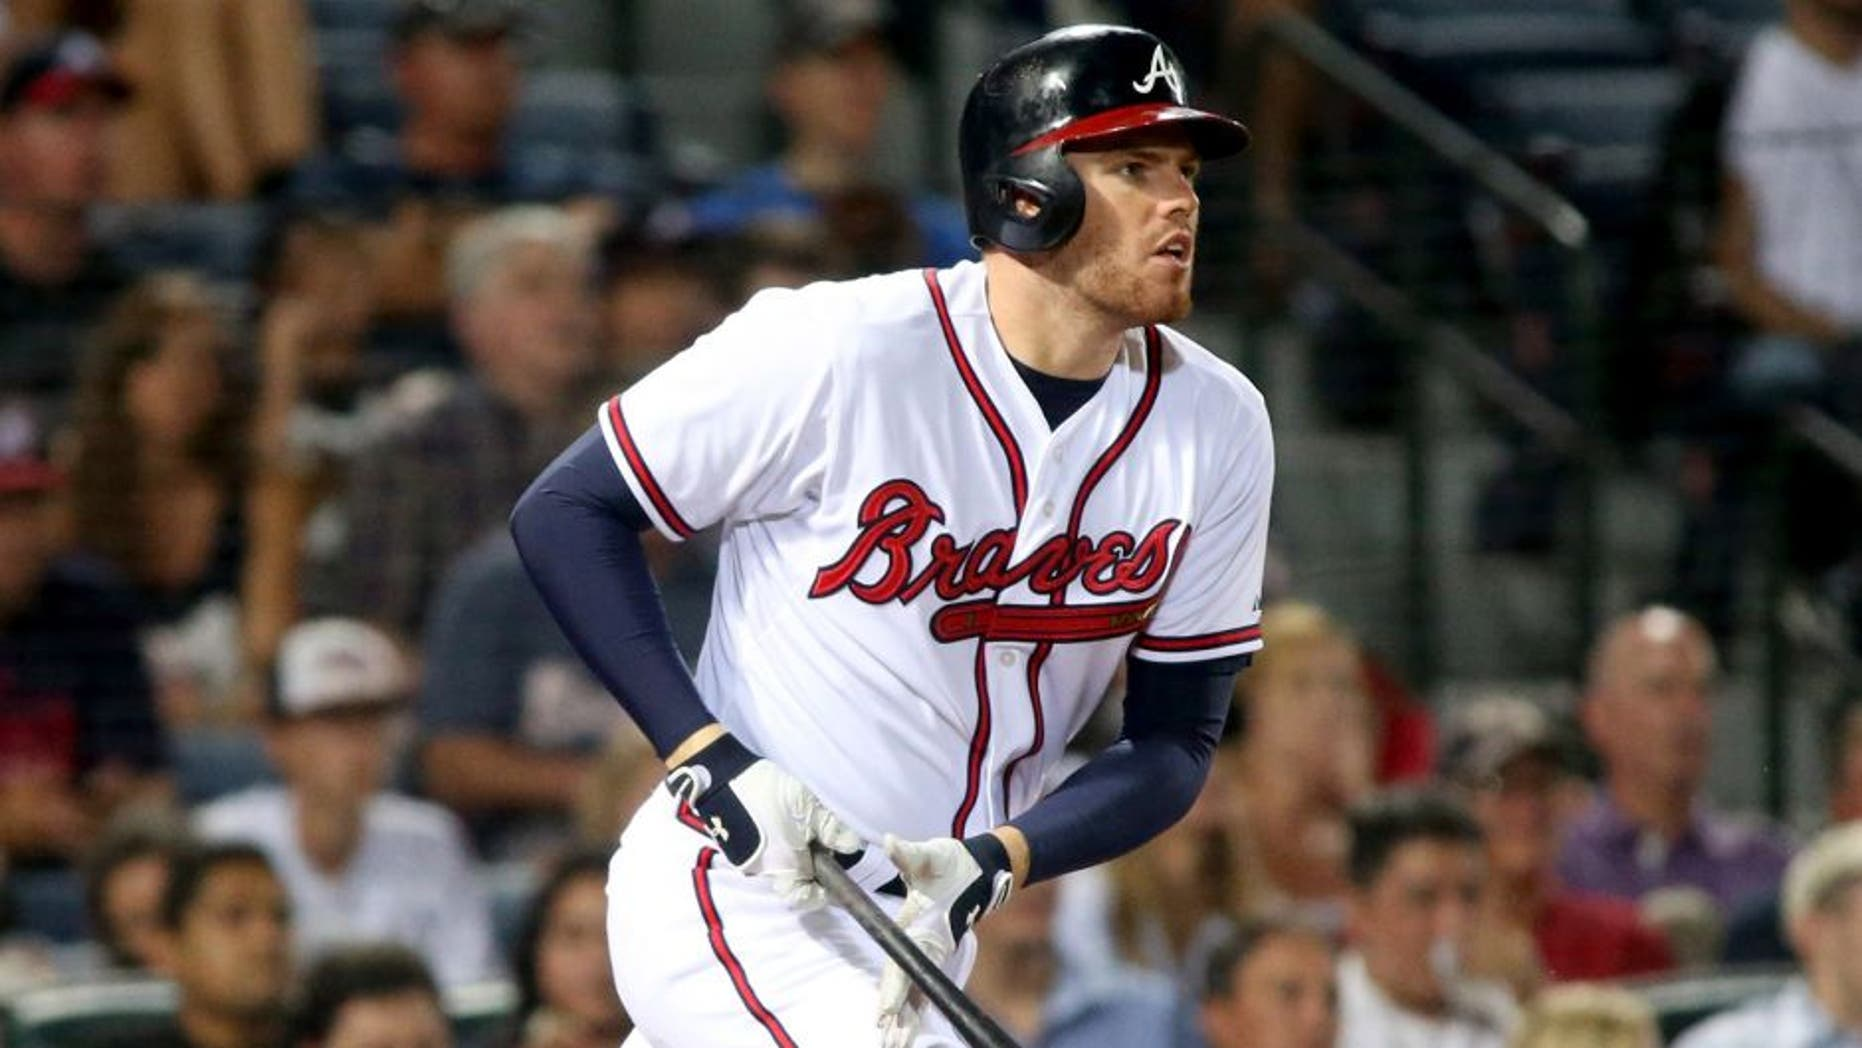 Jun 9, 2015; Atlanta, GA, USA; Atlanta Braves Freddie Freeman (5) hits a single in the sixth inning of their game against the San Diego Padres at Turner Field. Mandatory Credit: Jason Getz-USA TODAY Sports